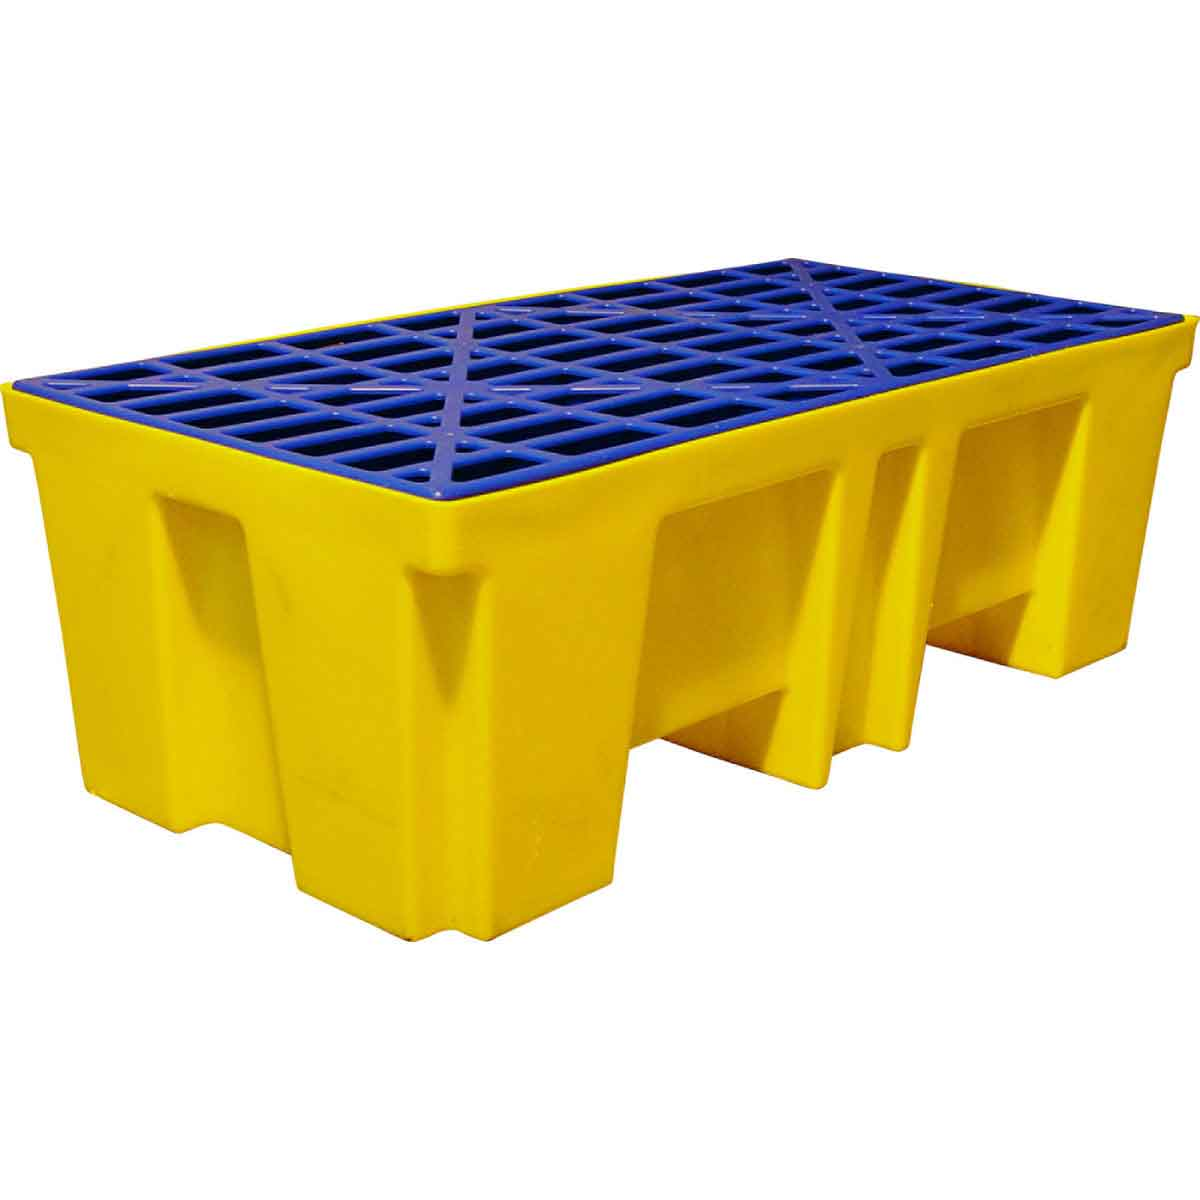 BRADY SC-DP2 2 Drum SpillContainment Pallet